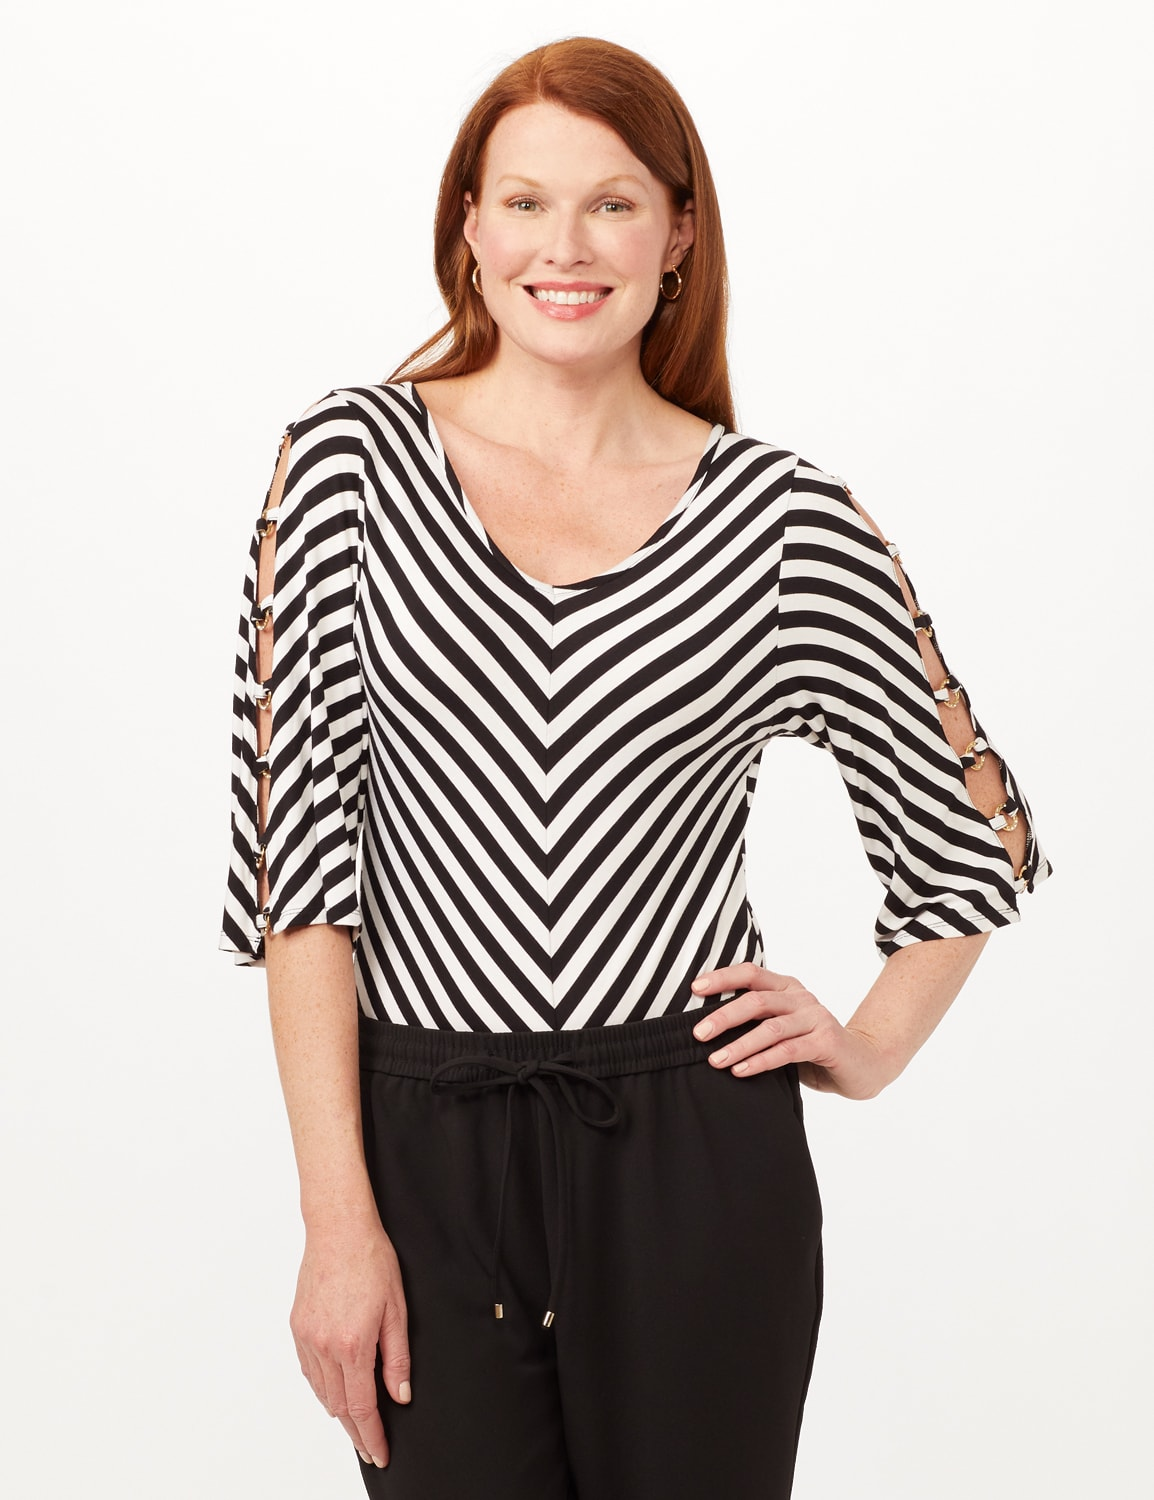 Lattice Sleeve Mitered Stripe Knit Top - Black/White - Front